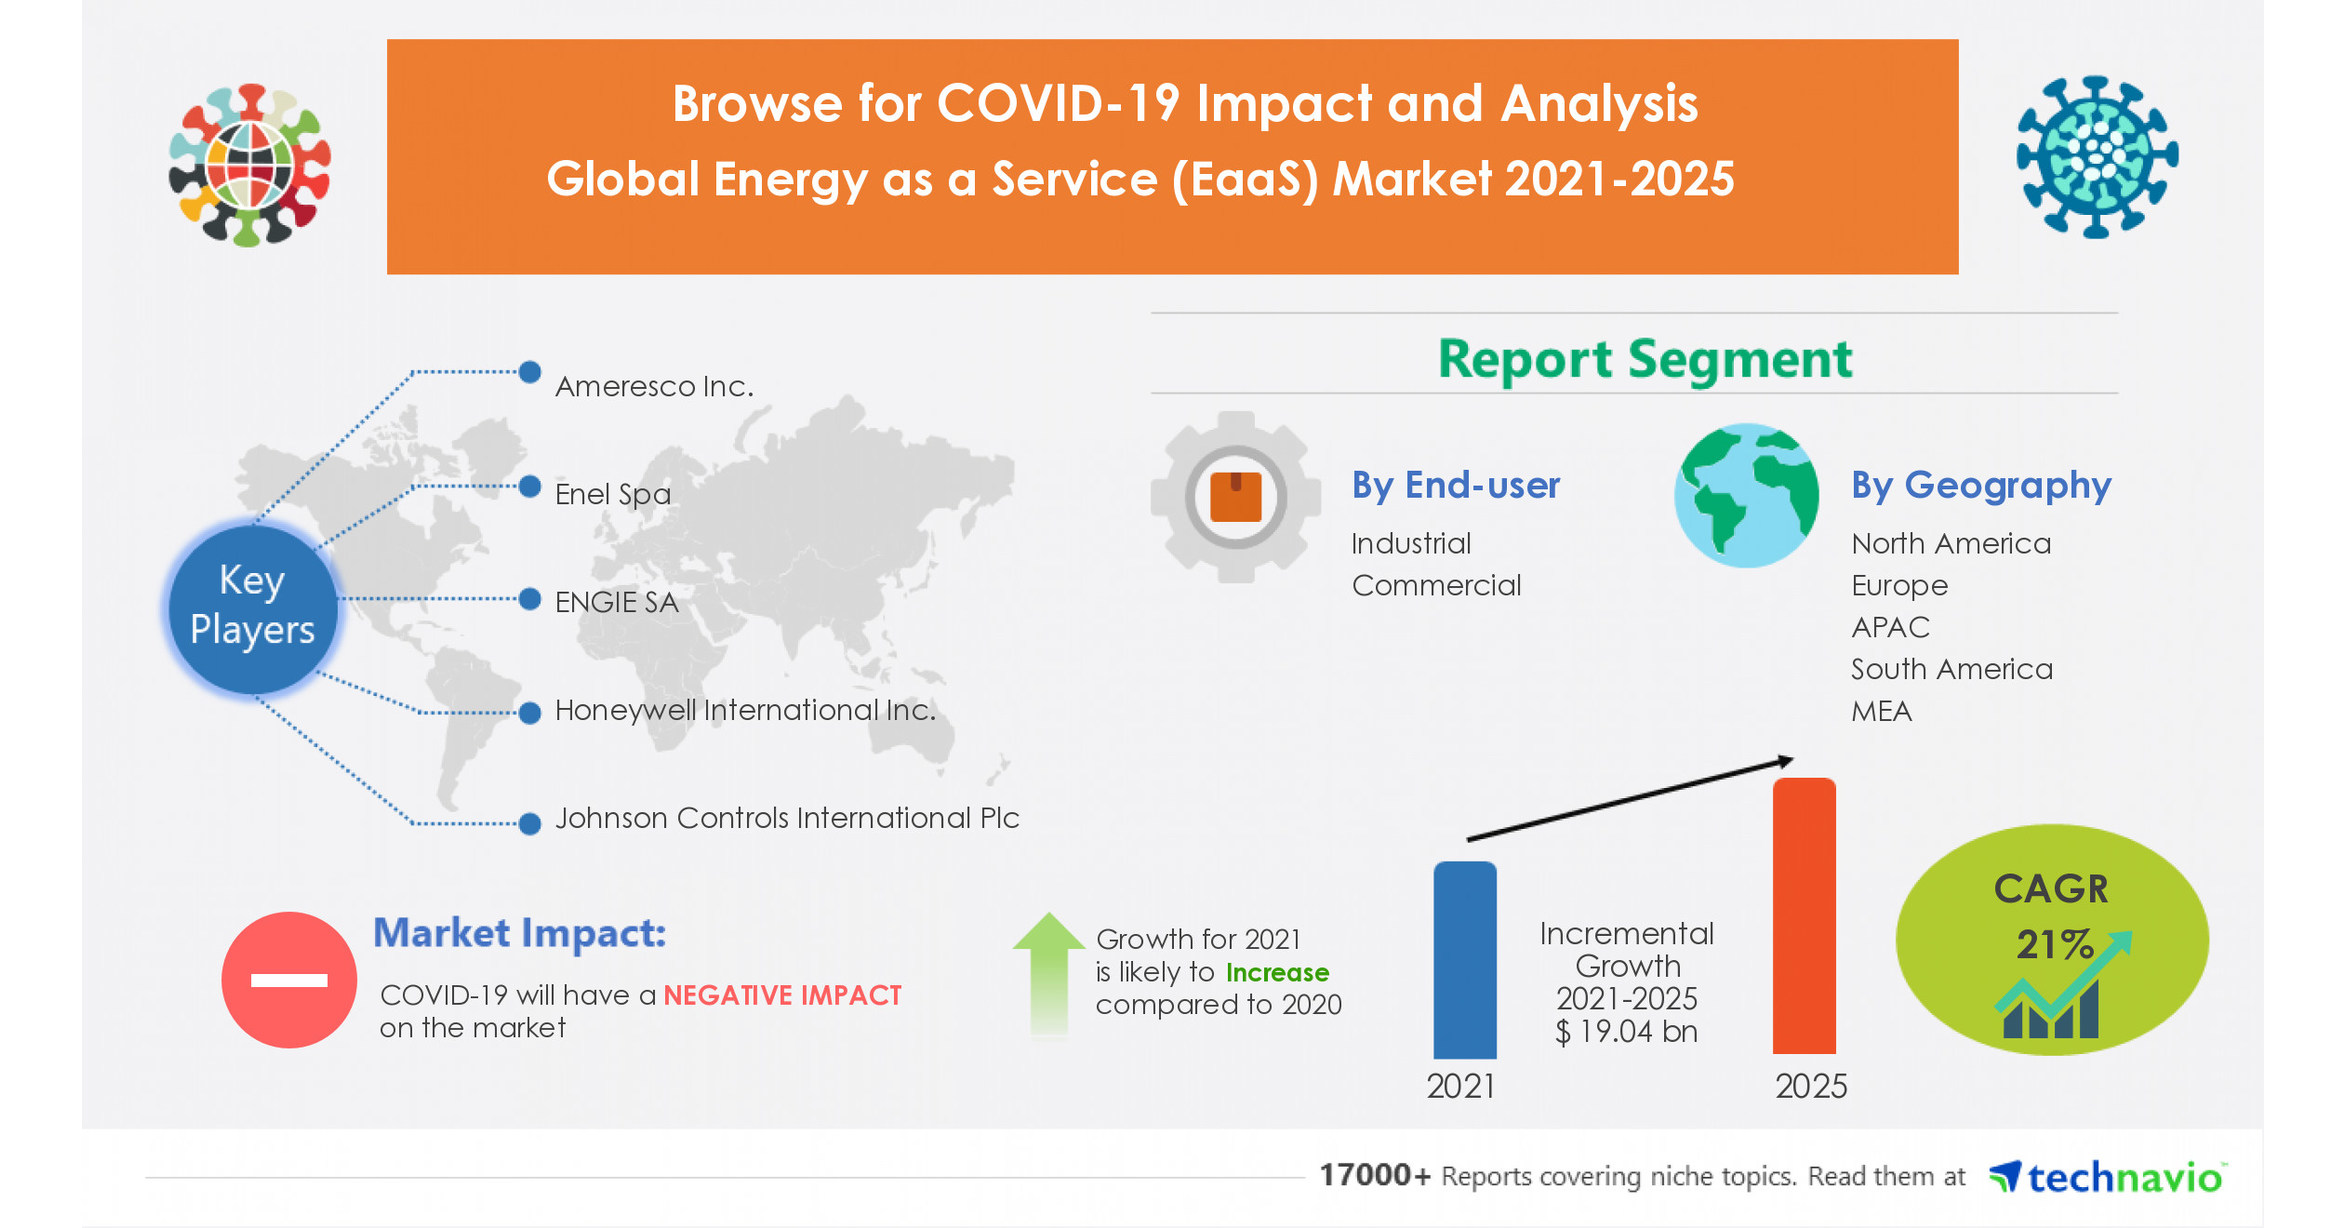 Energy Market as a Service (EaaS) will grow by $ 19.04 billion  Insight into key suppliers and forecasts